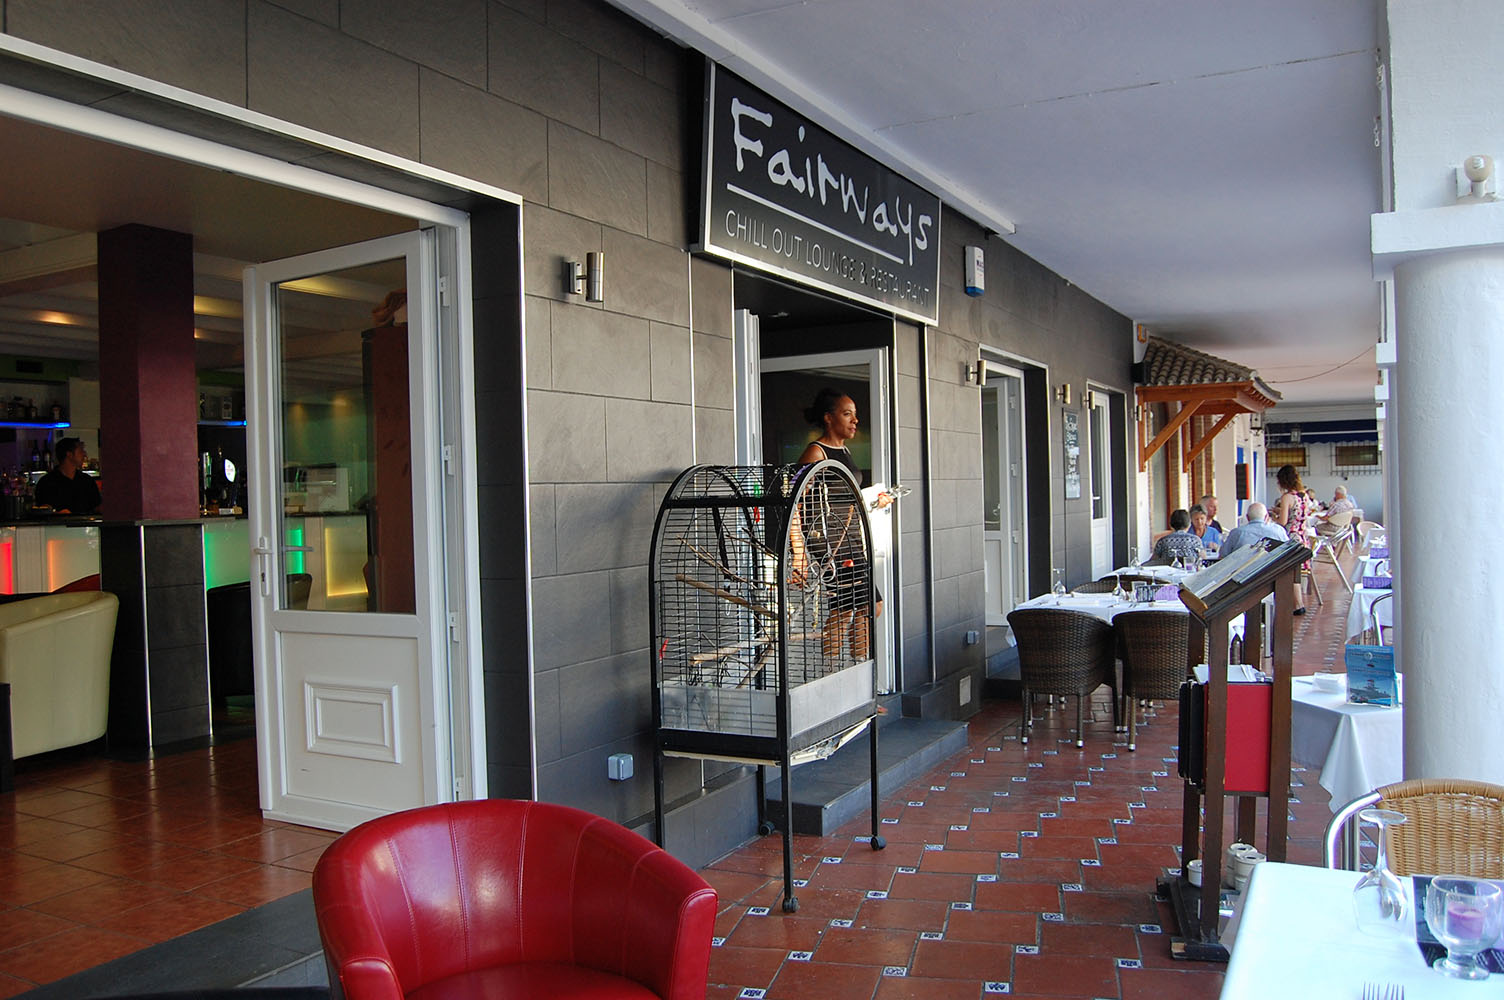 Fairways Restaurant & Chill Out Lounge on Villamartin Plaza